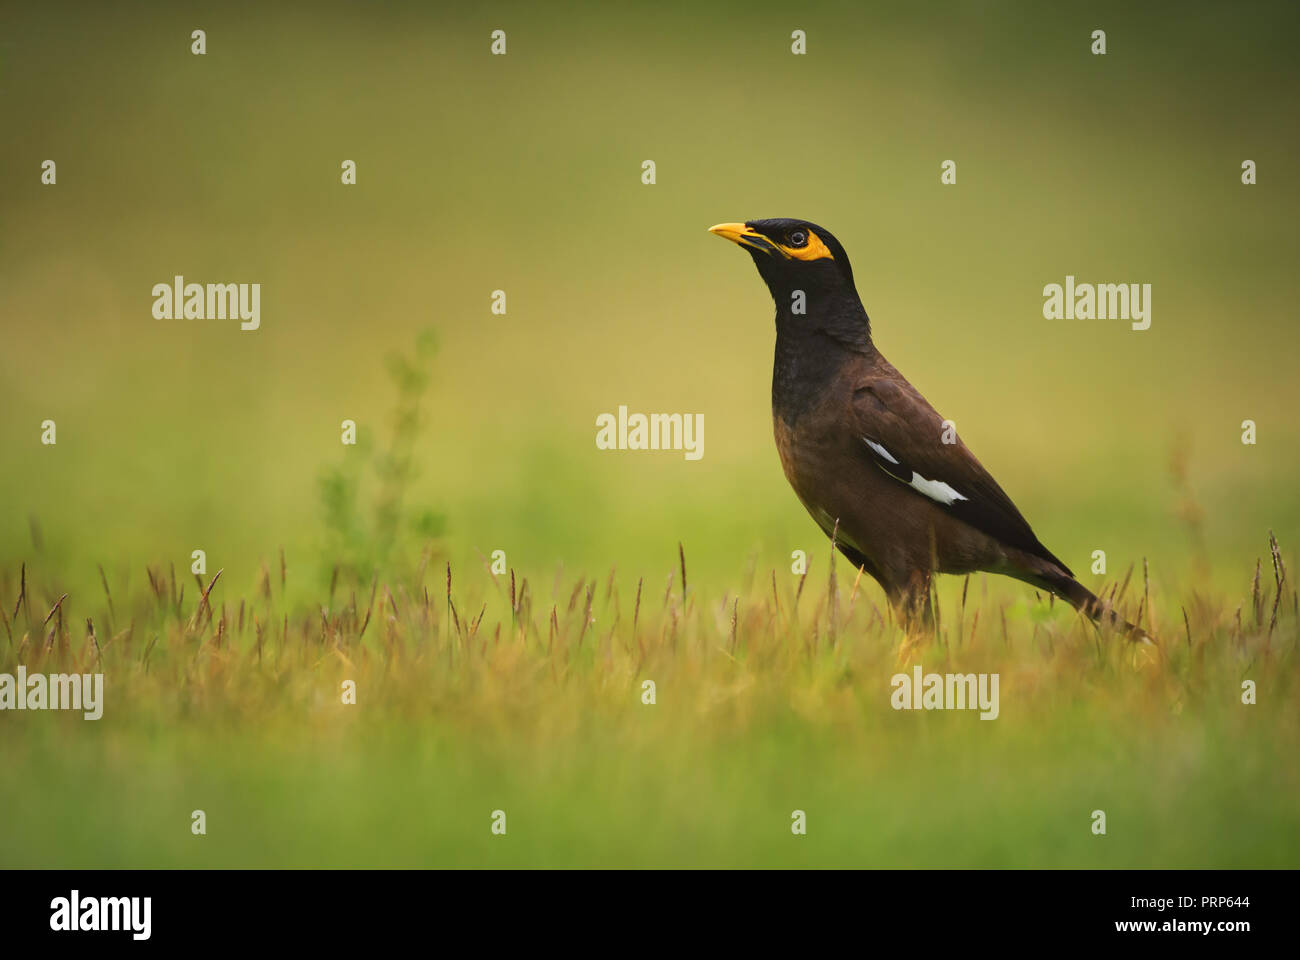 Common Myna - Acridotheres tristis, common perching bird from Asian gardens and woodlands, Thailand. - Stock Image